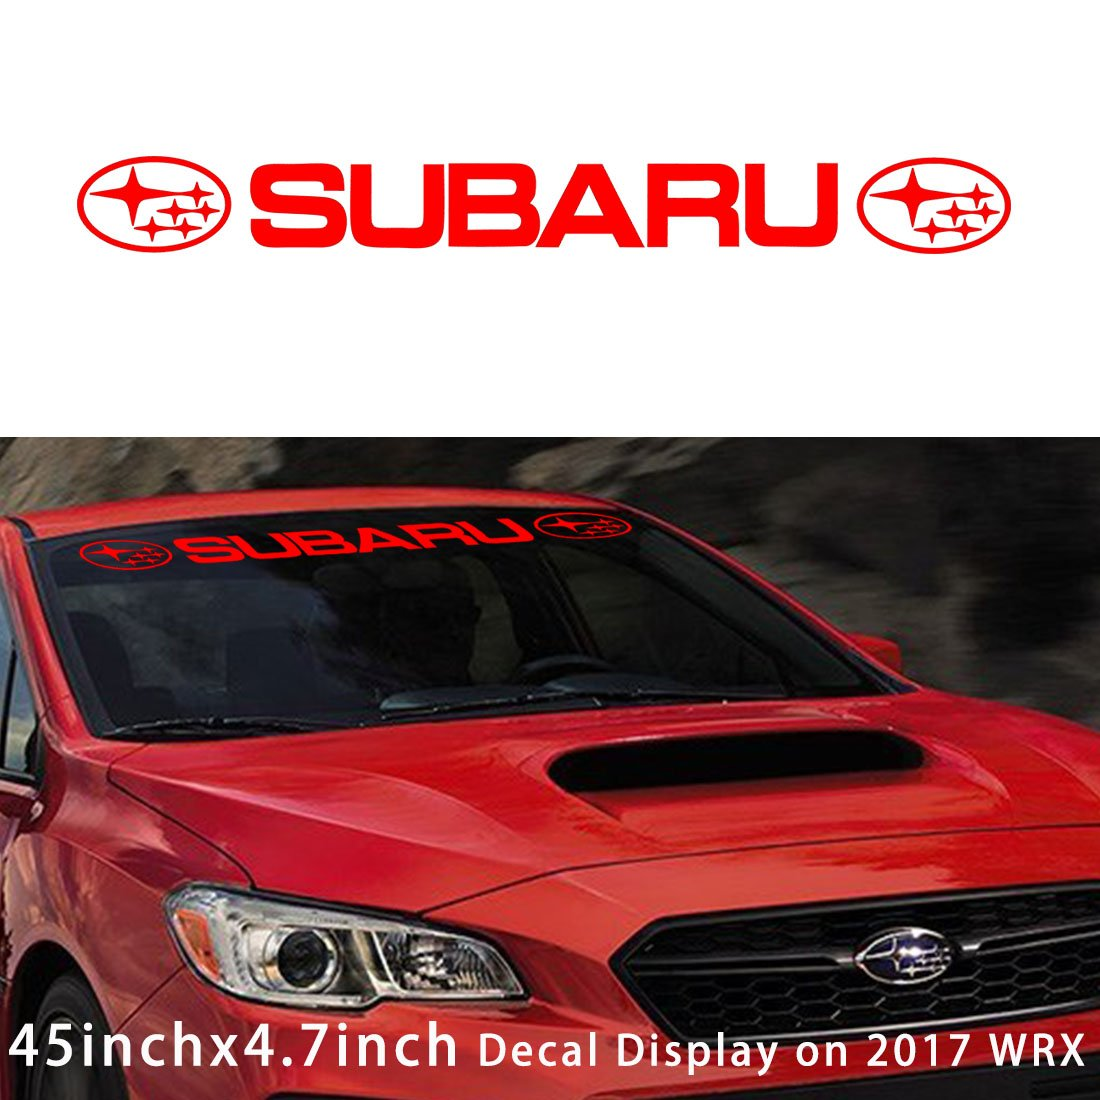 Kaizen auto windshield sticker banner decal vinyl rally window graphic wrx custom sti decal stripe sticker for subaru brz baja brat justy impreza forester